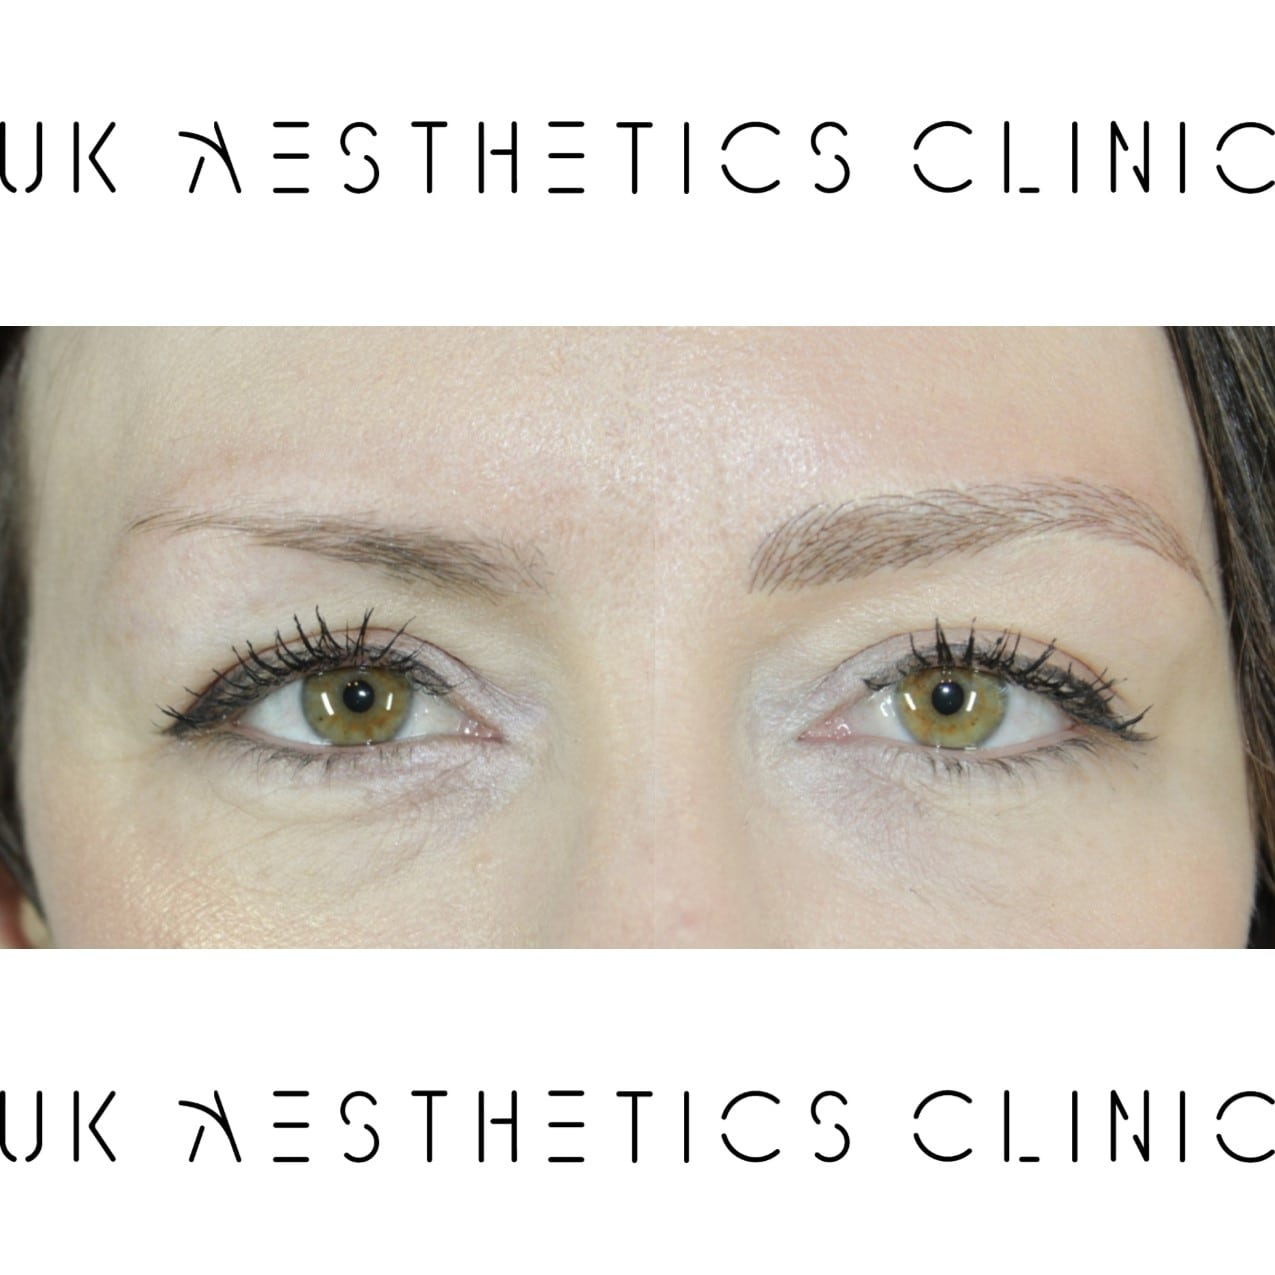 microblading-treatment-uk-aesthetics-clinic-Kathryn